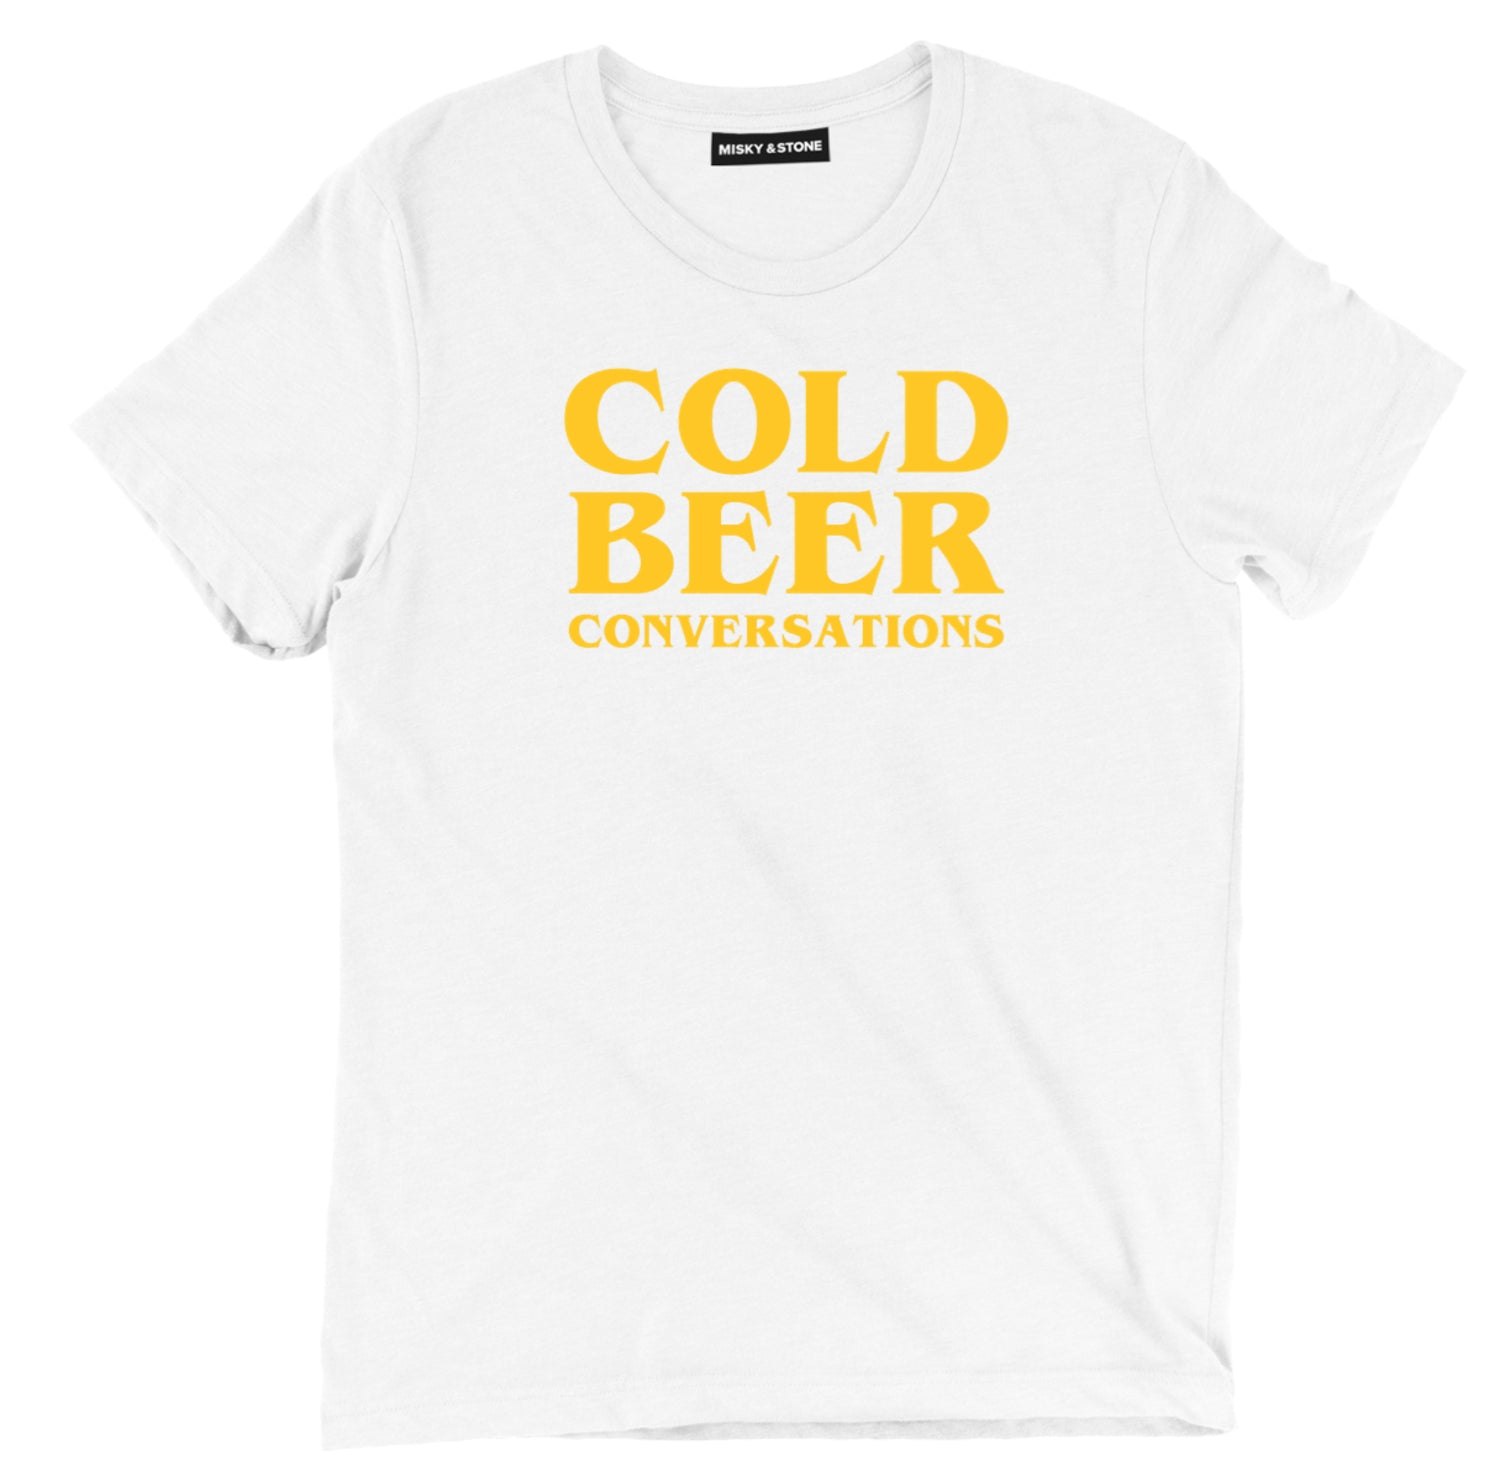 Cold Beer Conversations Tee Shirt